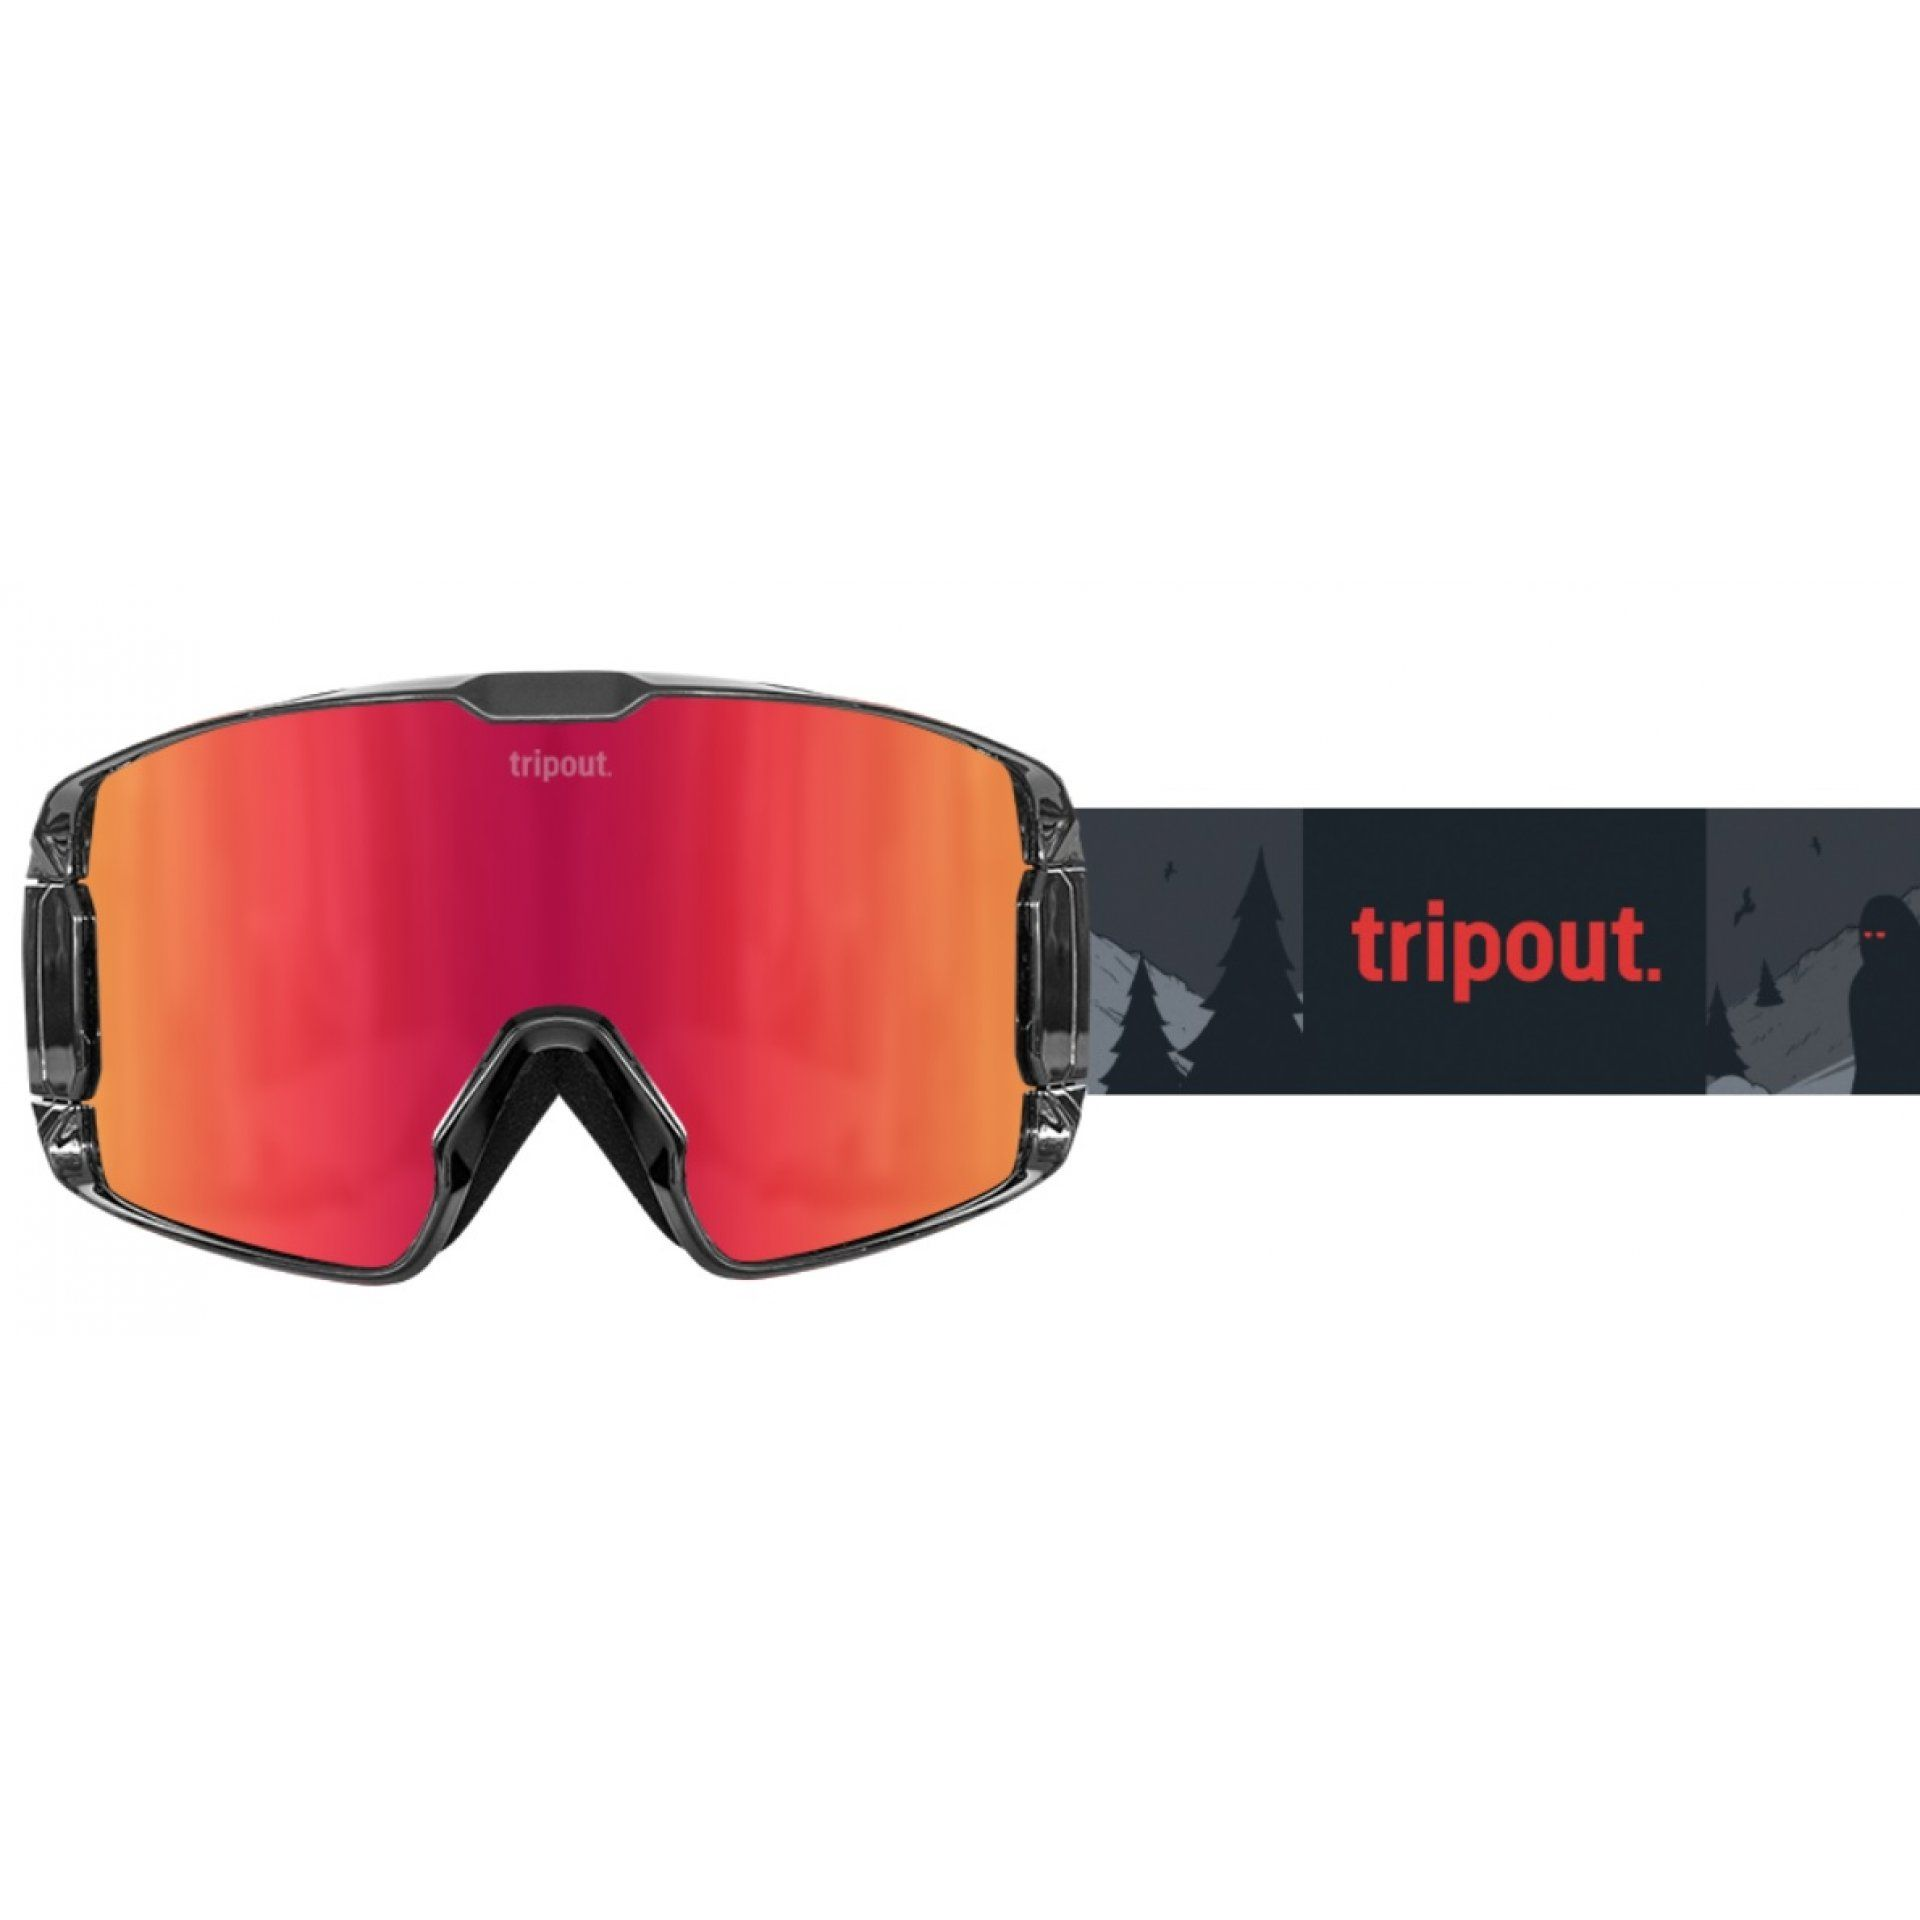 GOGLE TRIPOUT TRX GRIZZLY|ORANGE FIRE+FOGGY+CLEAR 1